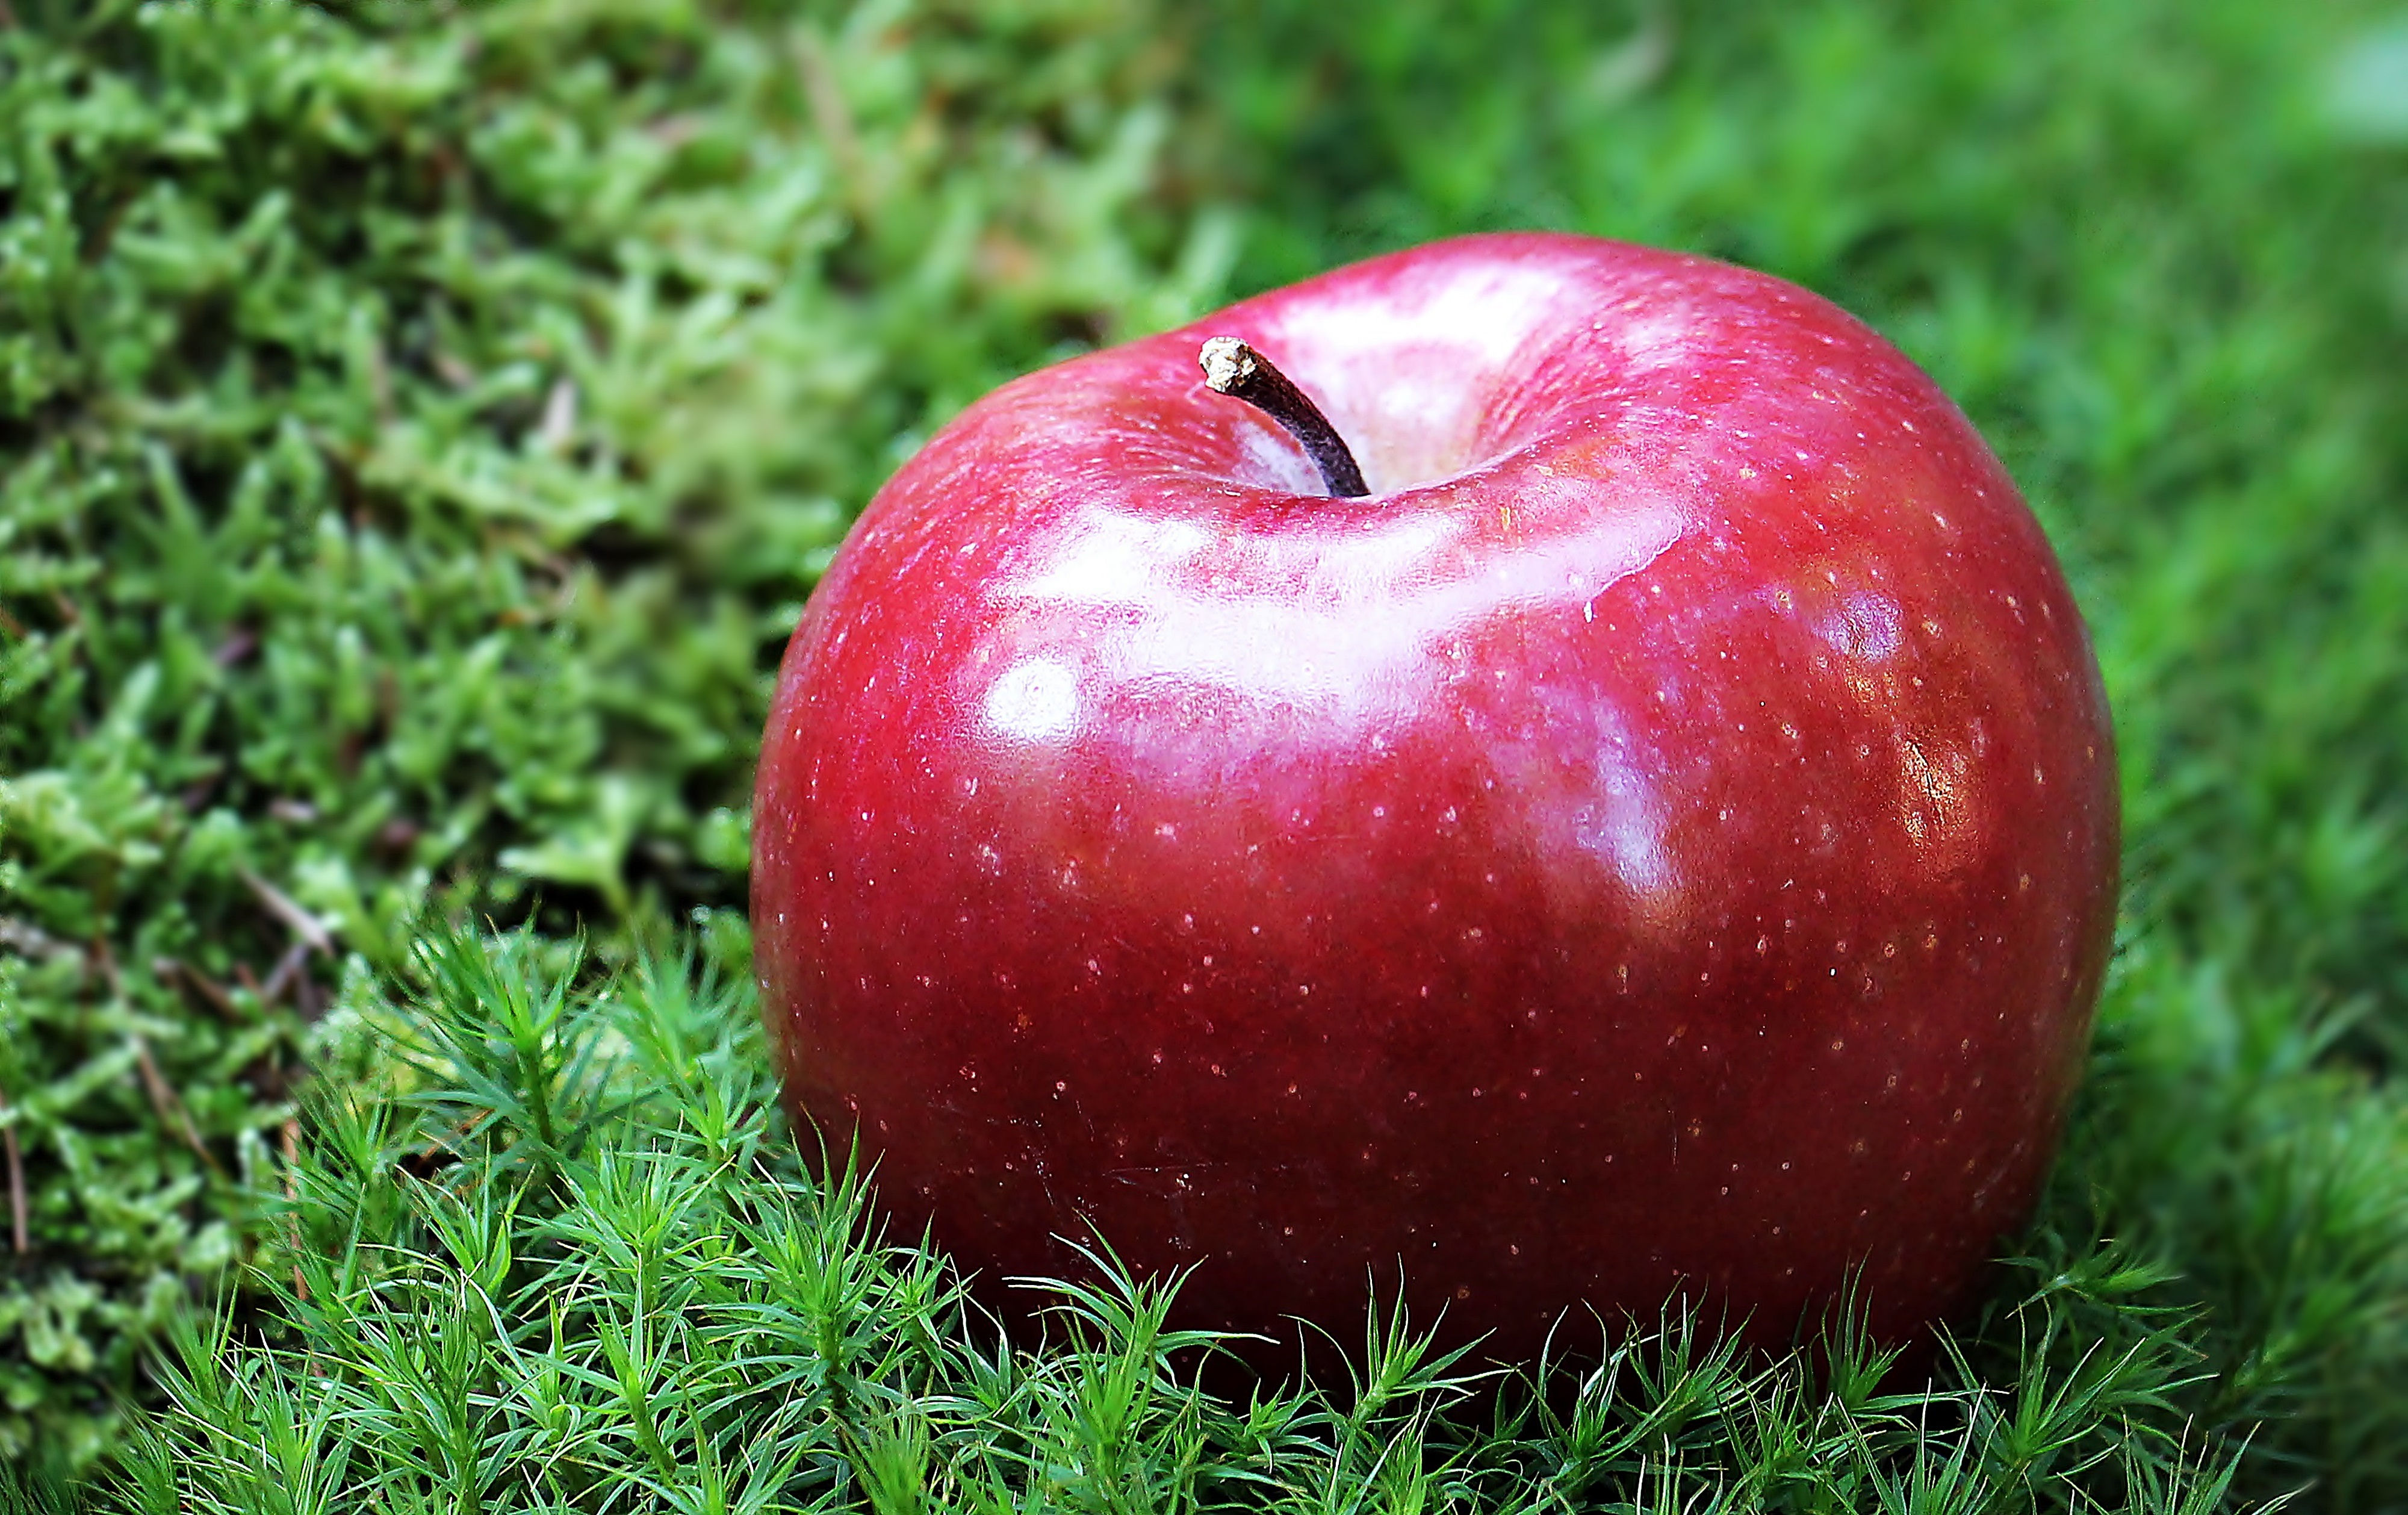 Iphone Happy New Year Wallpaper Red Apple Fruit Photography 183 Free Stock Photo